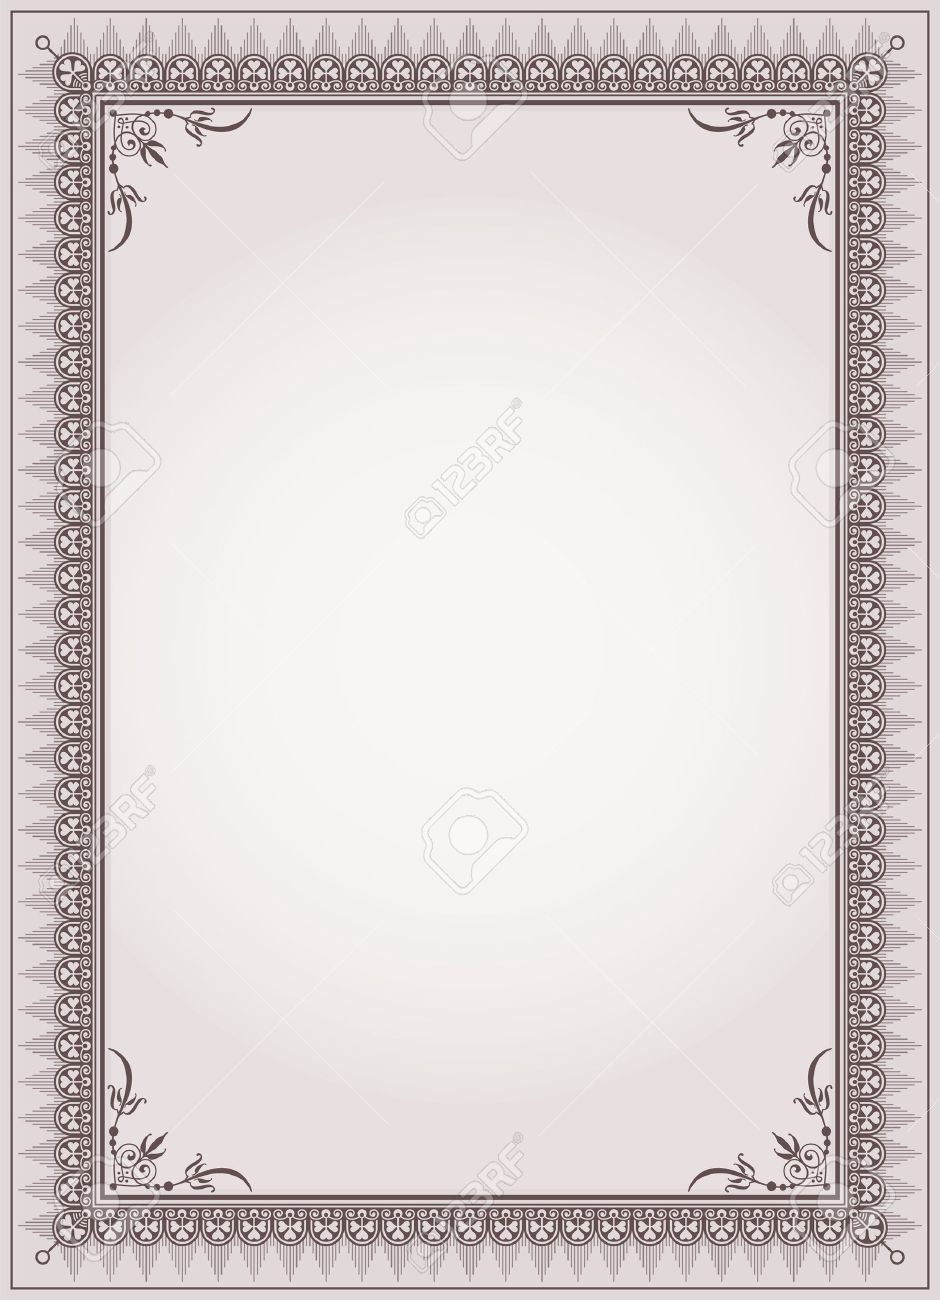 Decorative Border Frame Background Certificate Template Vector ...